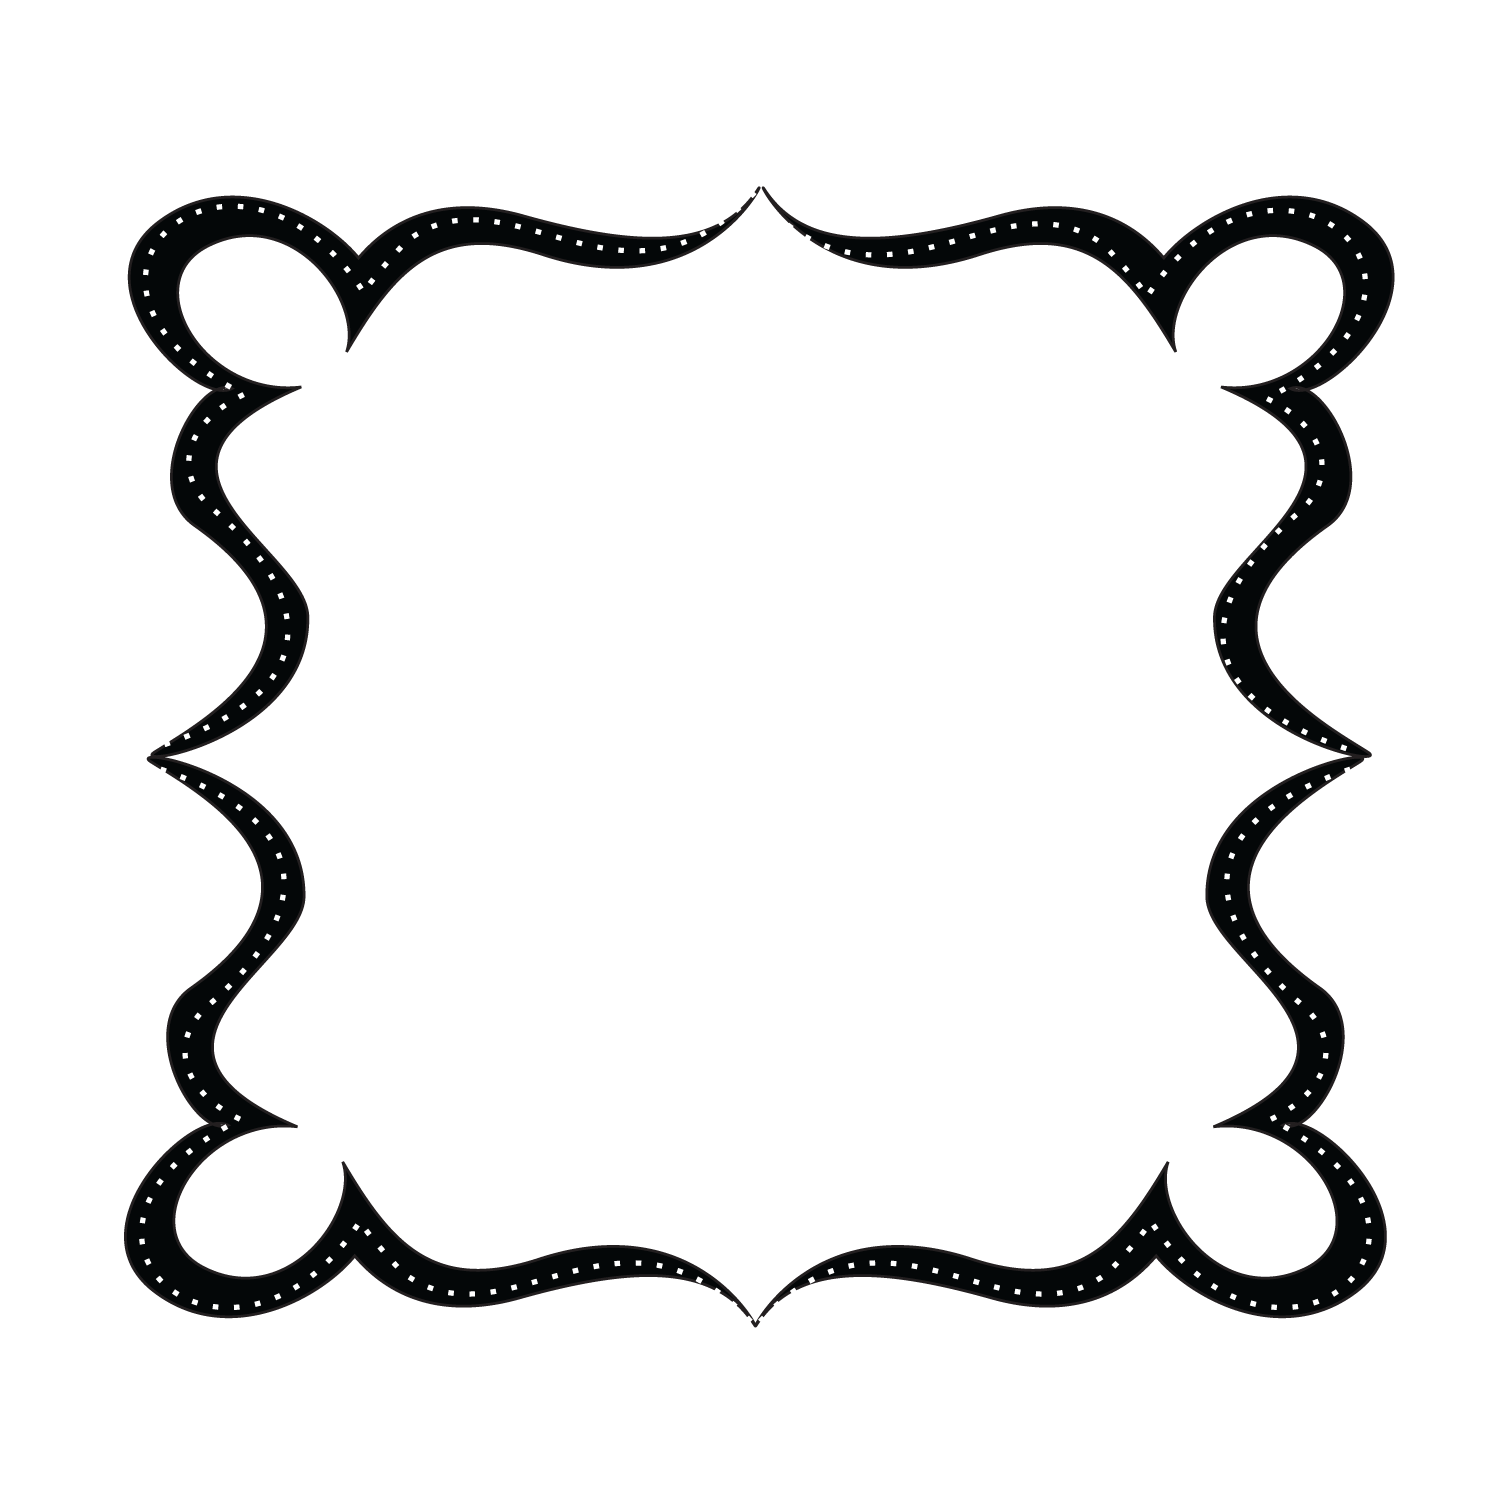 Ornate cross clipart vector black and white download Elegant Borders Clipart | Free download best Elegant Borders Clipart ... vector black and white download